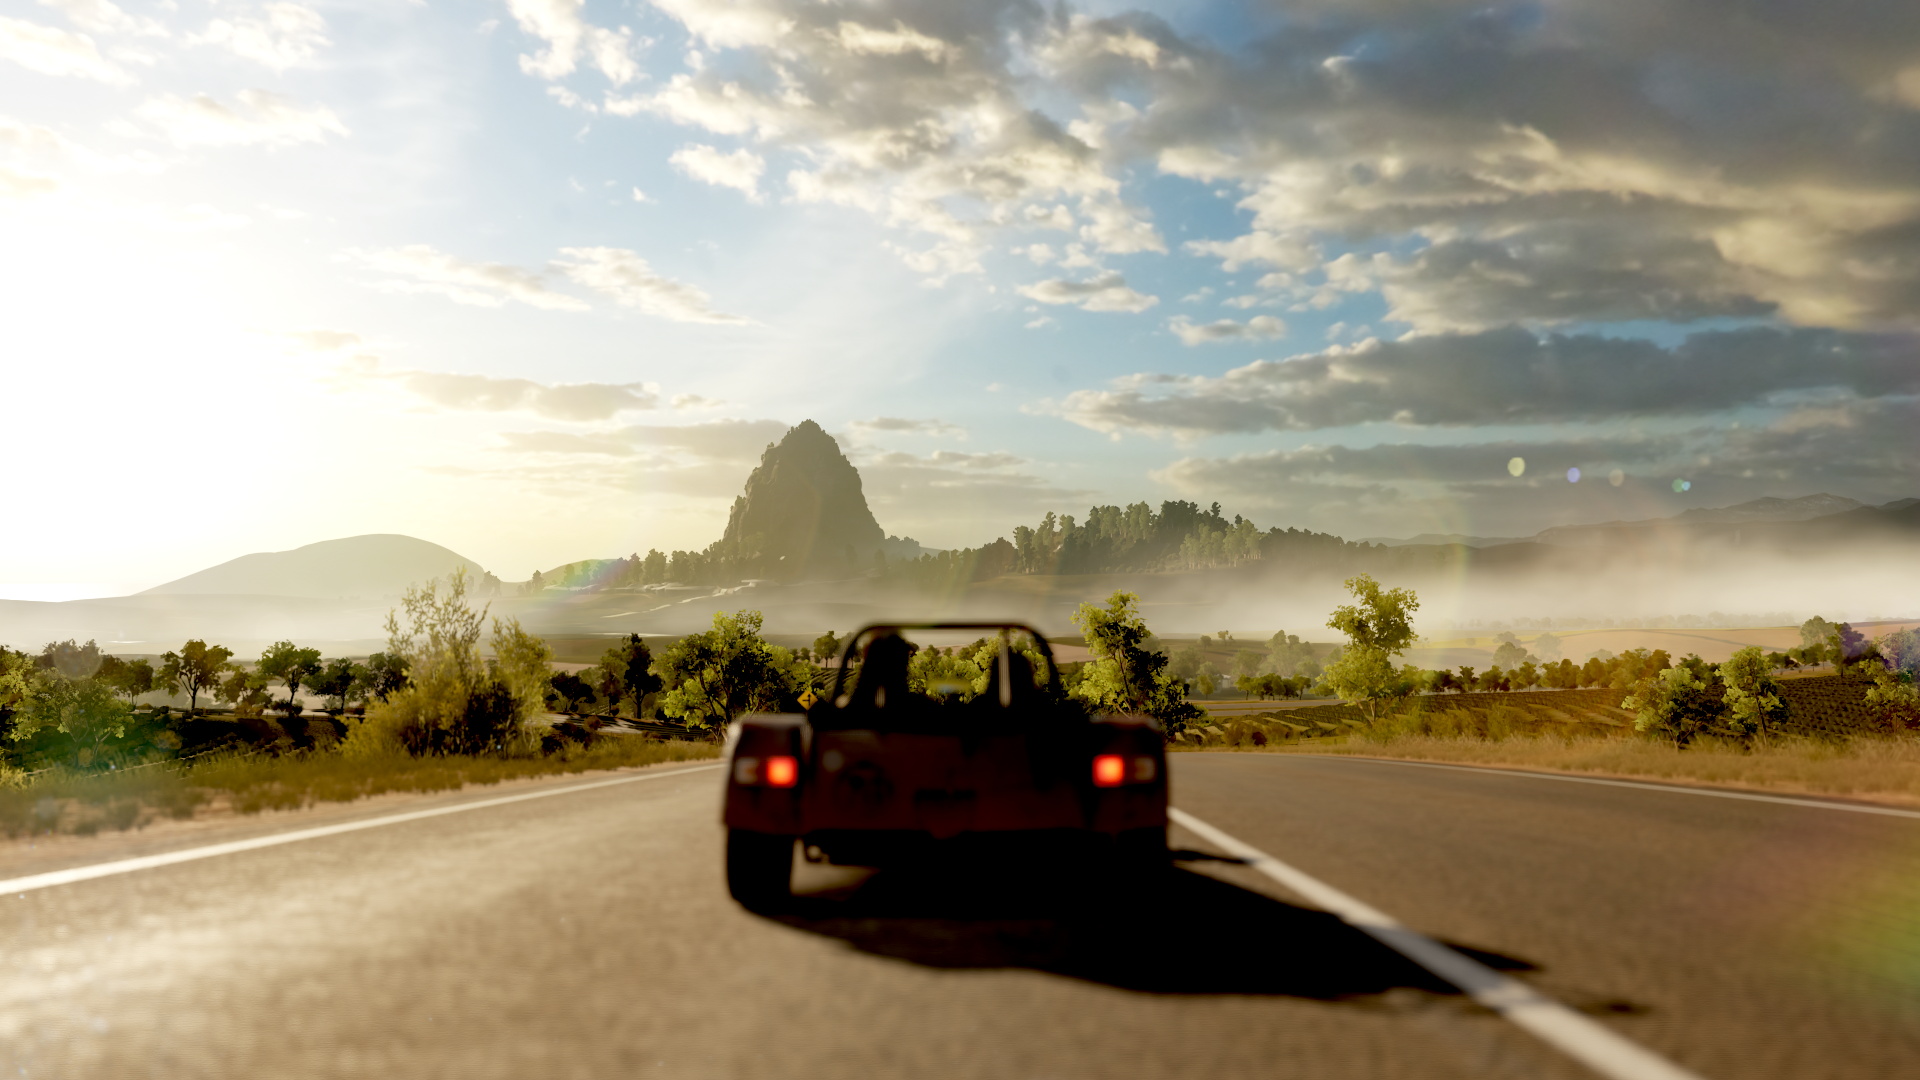 forza horizon 3 photo gif thread page 5 discussion rllmuk. Black Bedroom Furniture Sets. Home Design Ideas